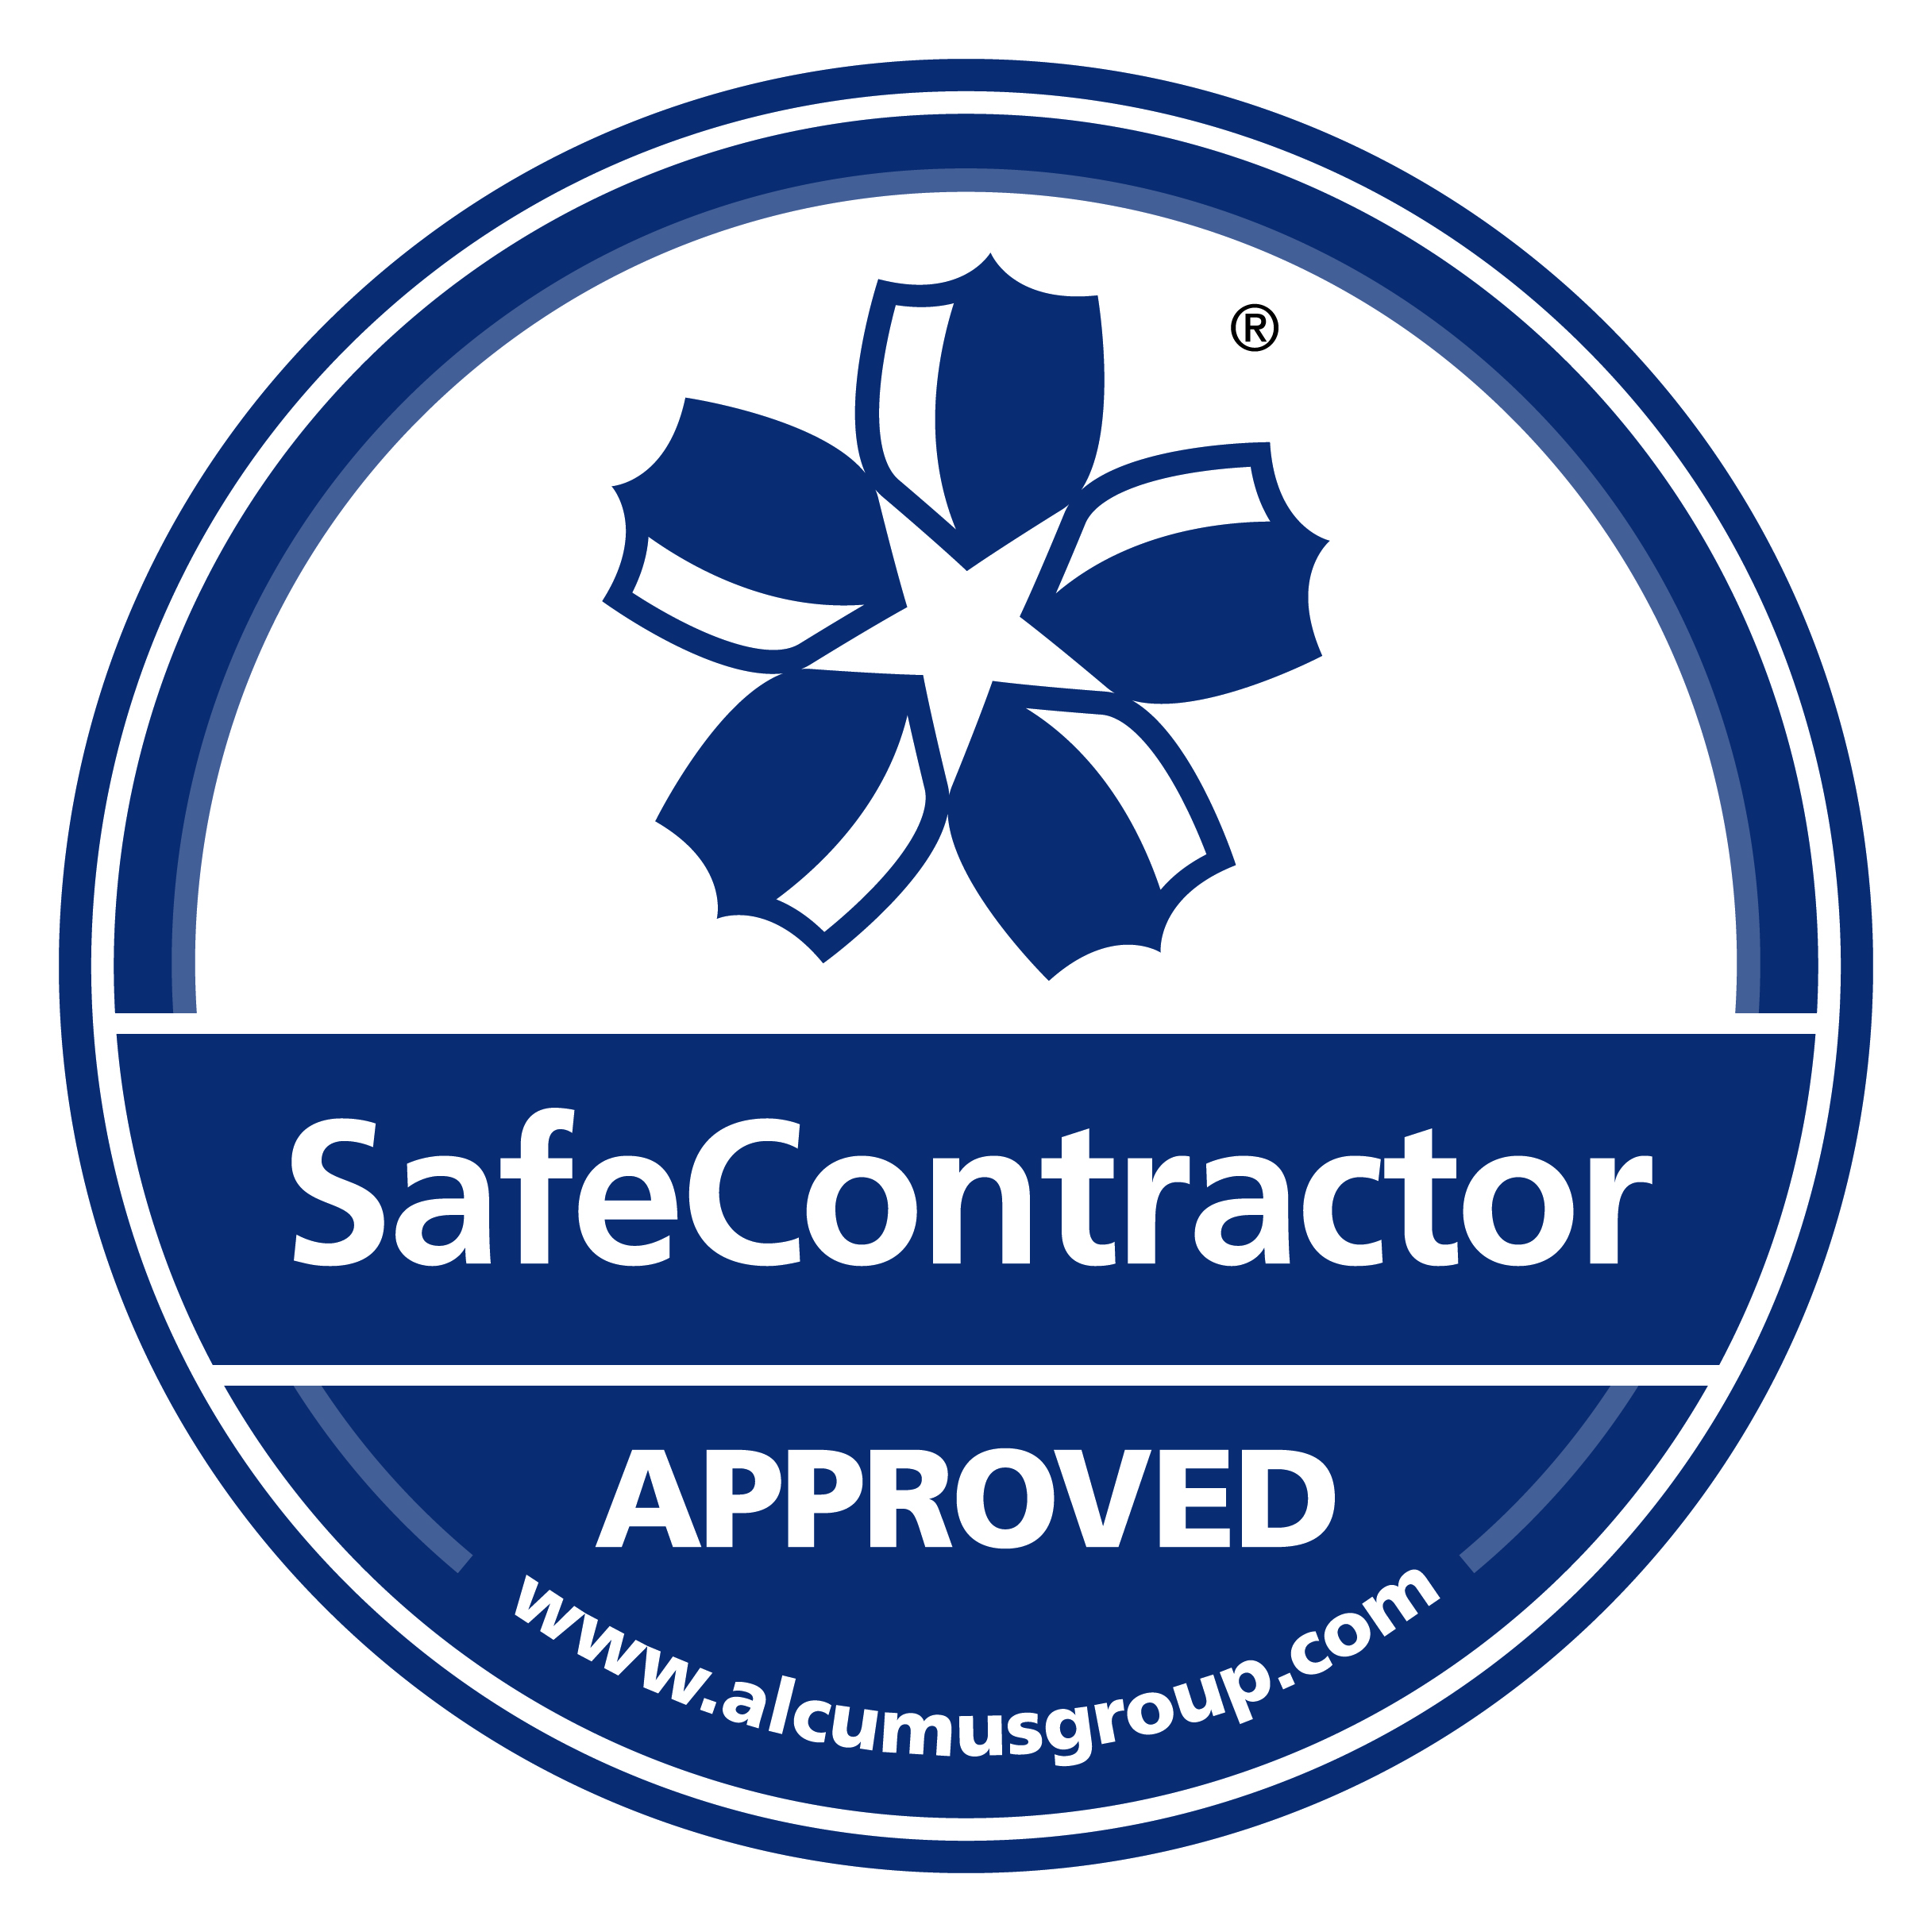 Safe Contractor Approved Label